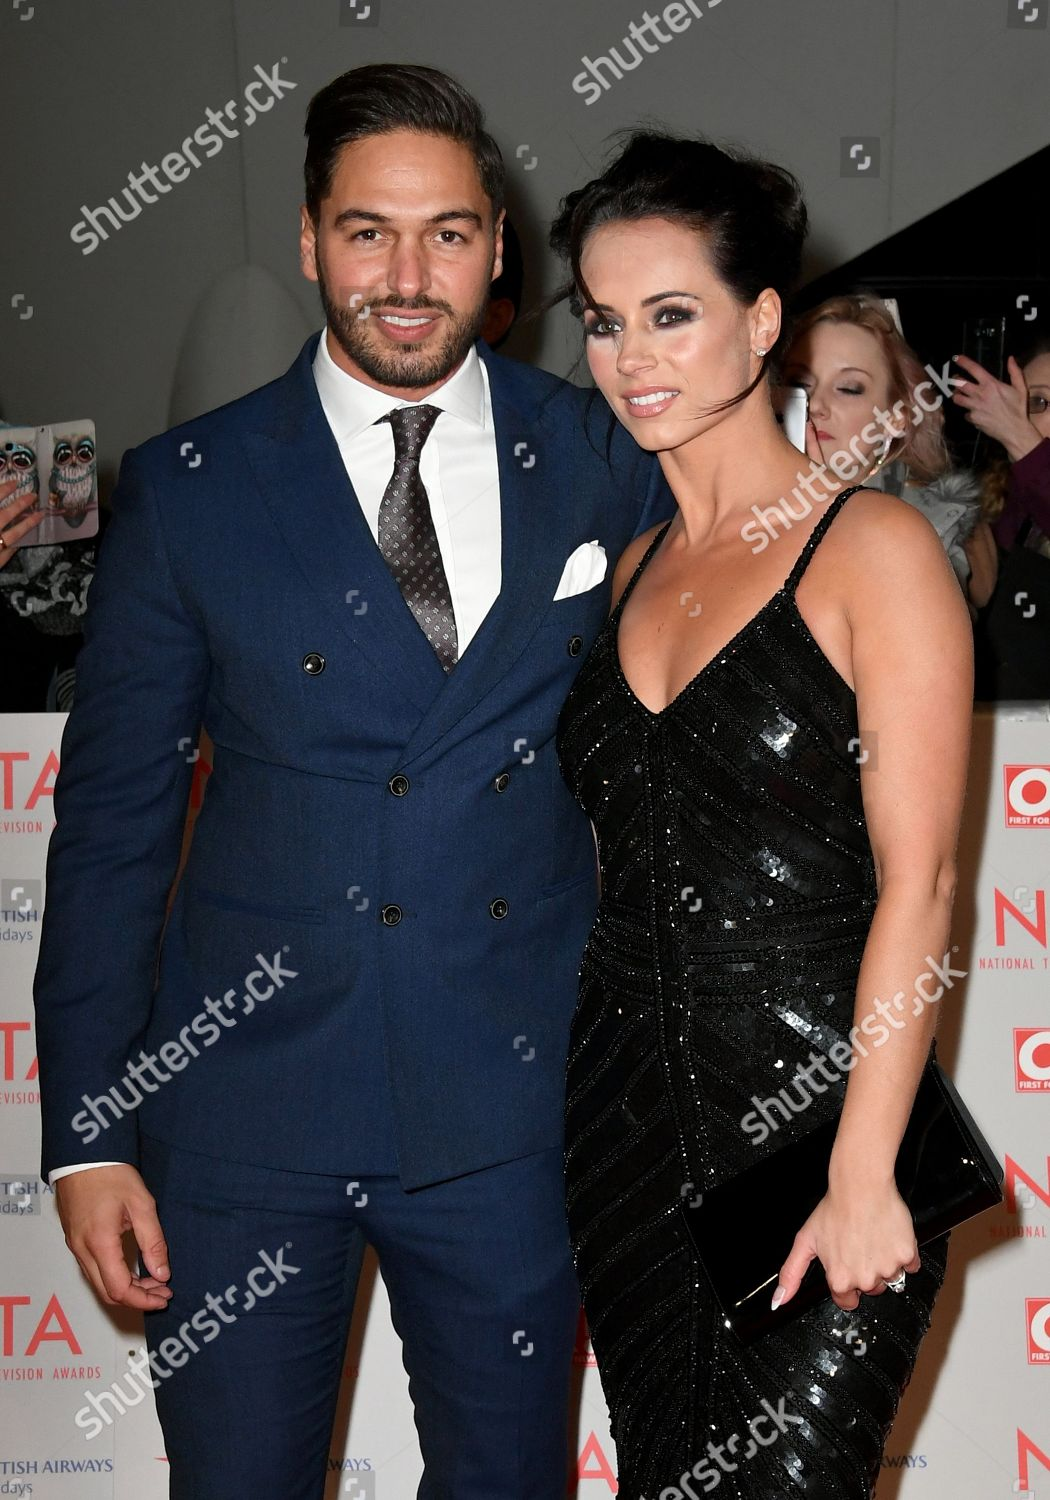 Mario falcone Dating-Website